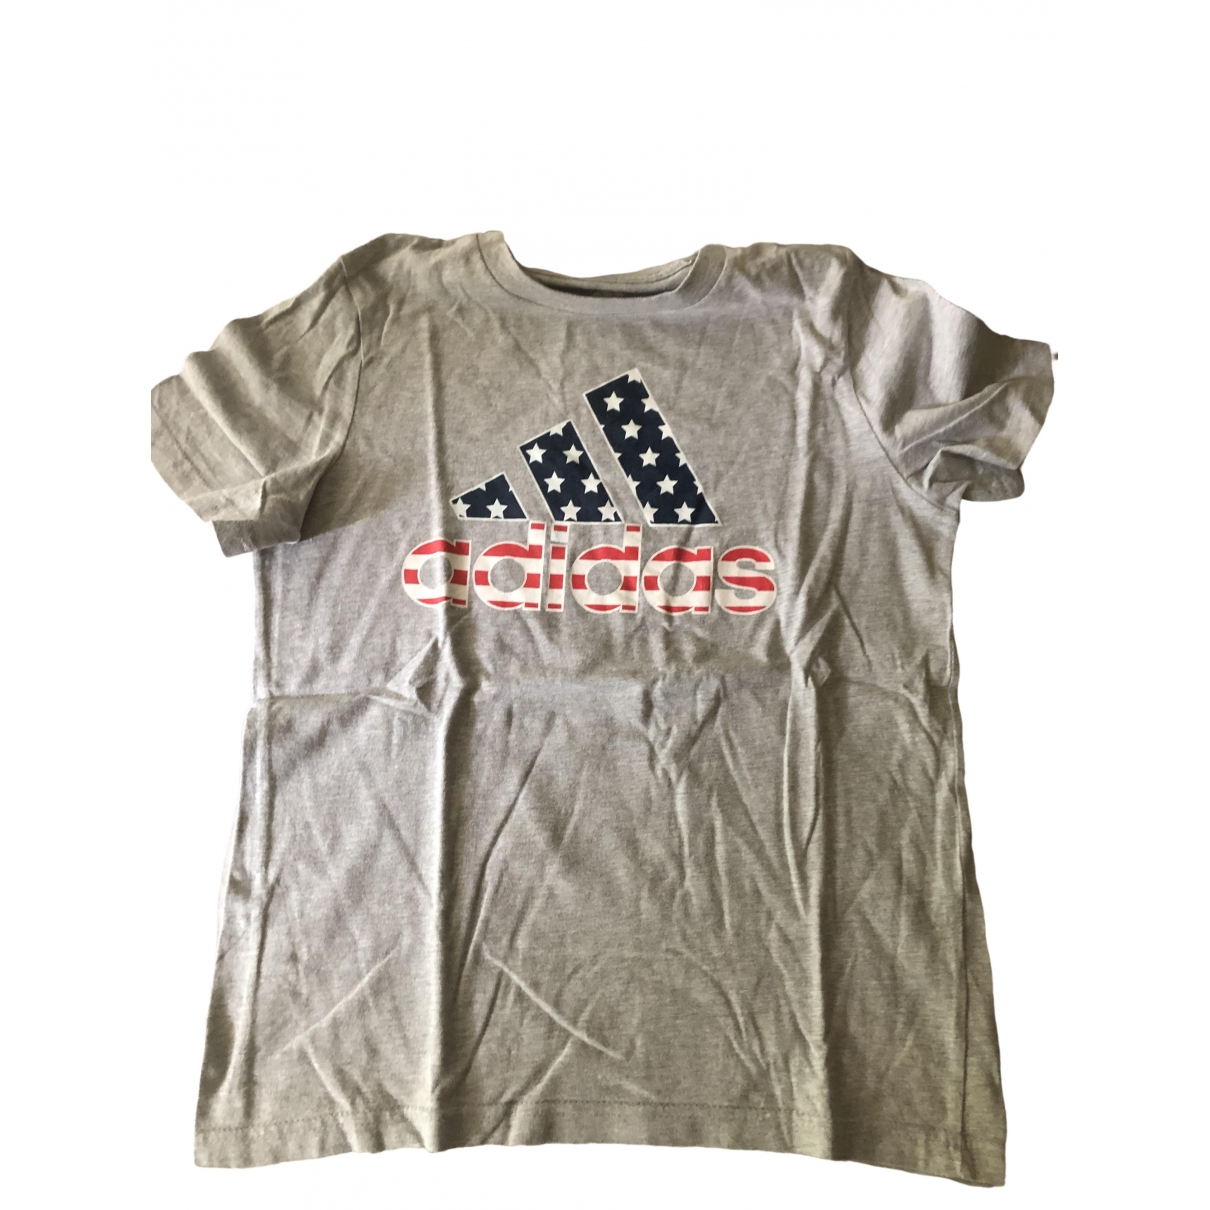 Adidas \N Grey Cotton  top for Kids 8 years - until 50 inches UK